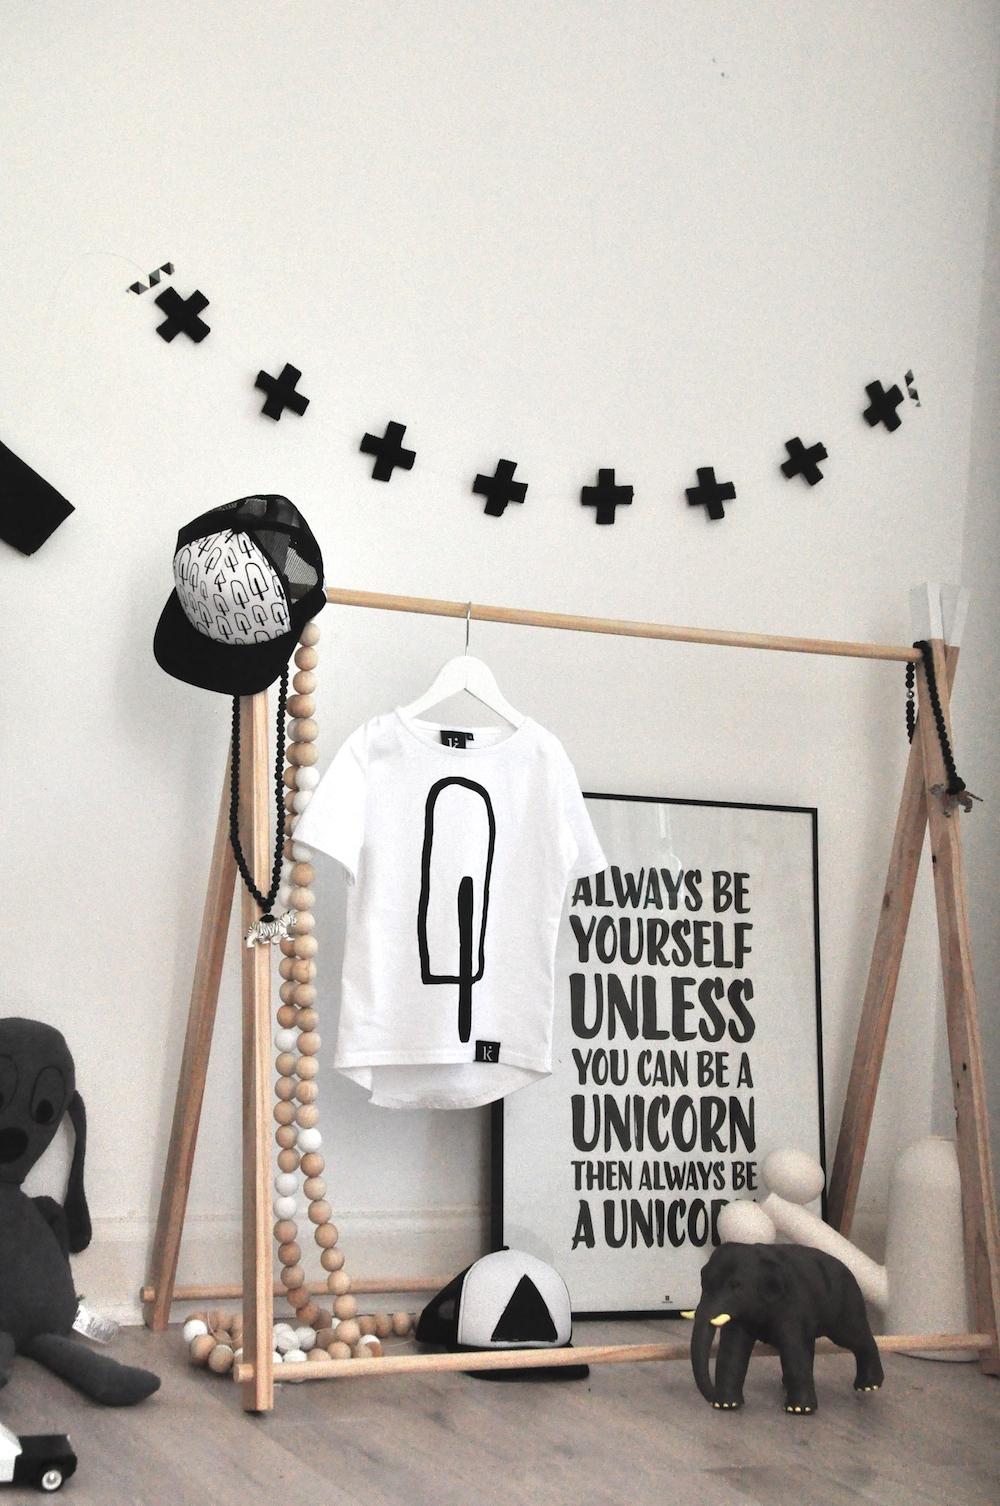 Peachy_baby_kindish_tshirt_unicorn_poster_cap